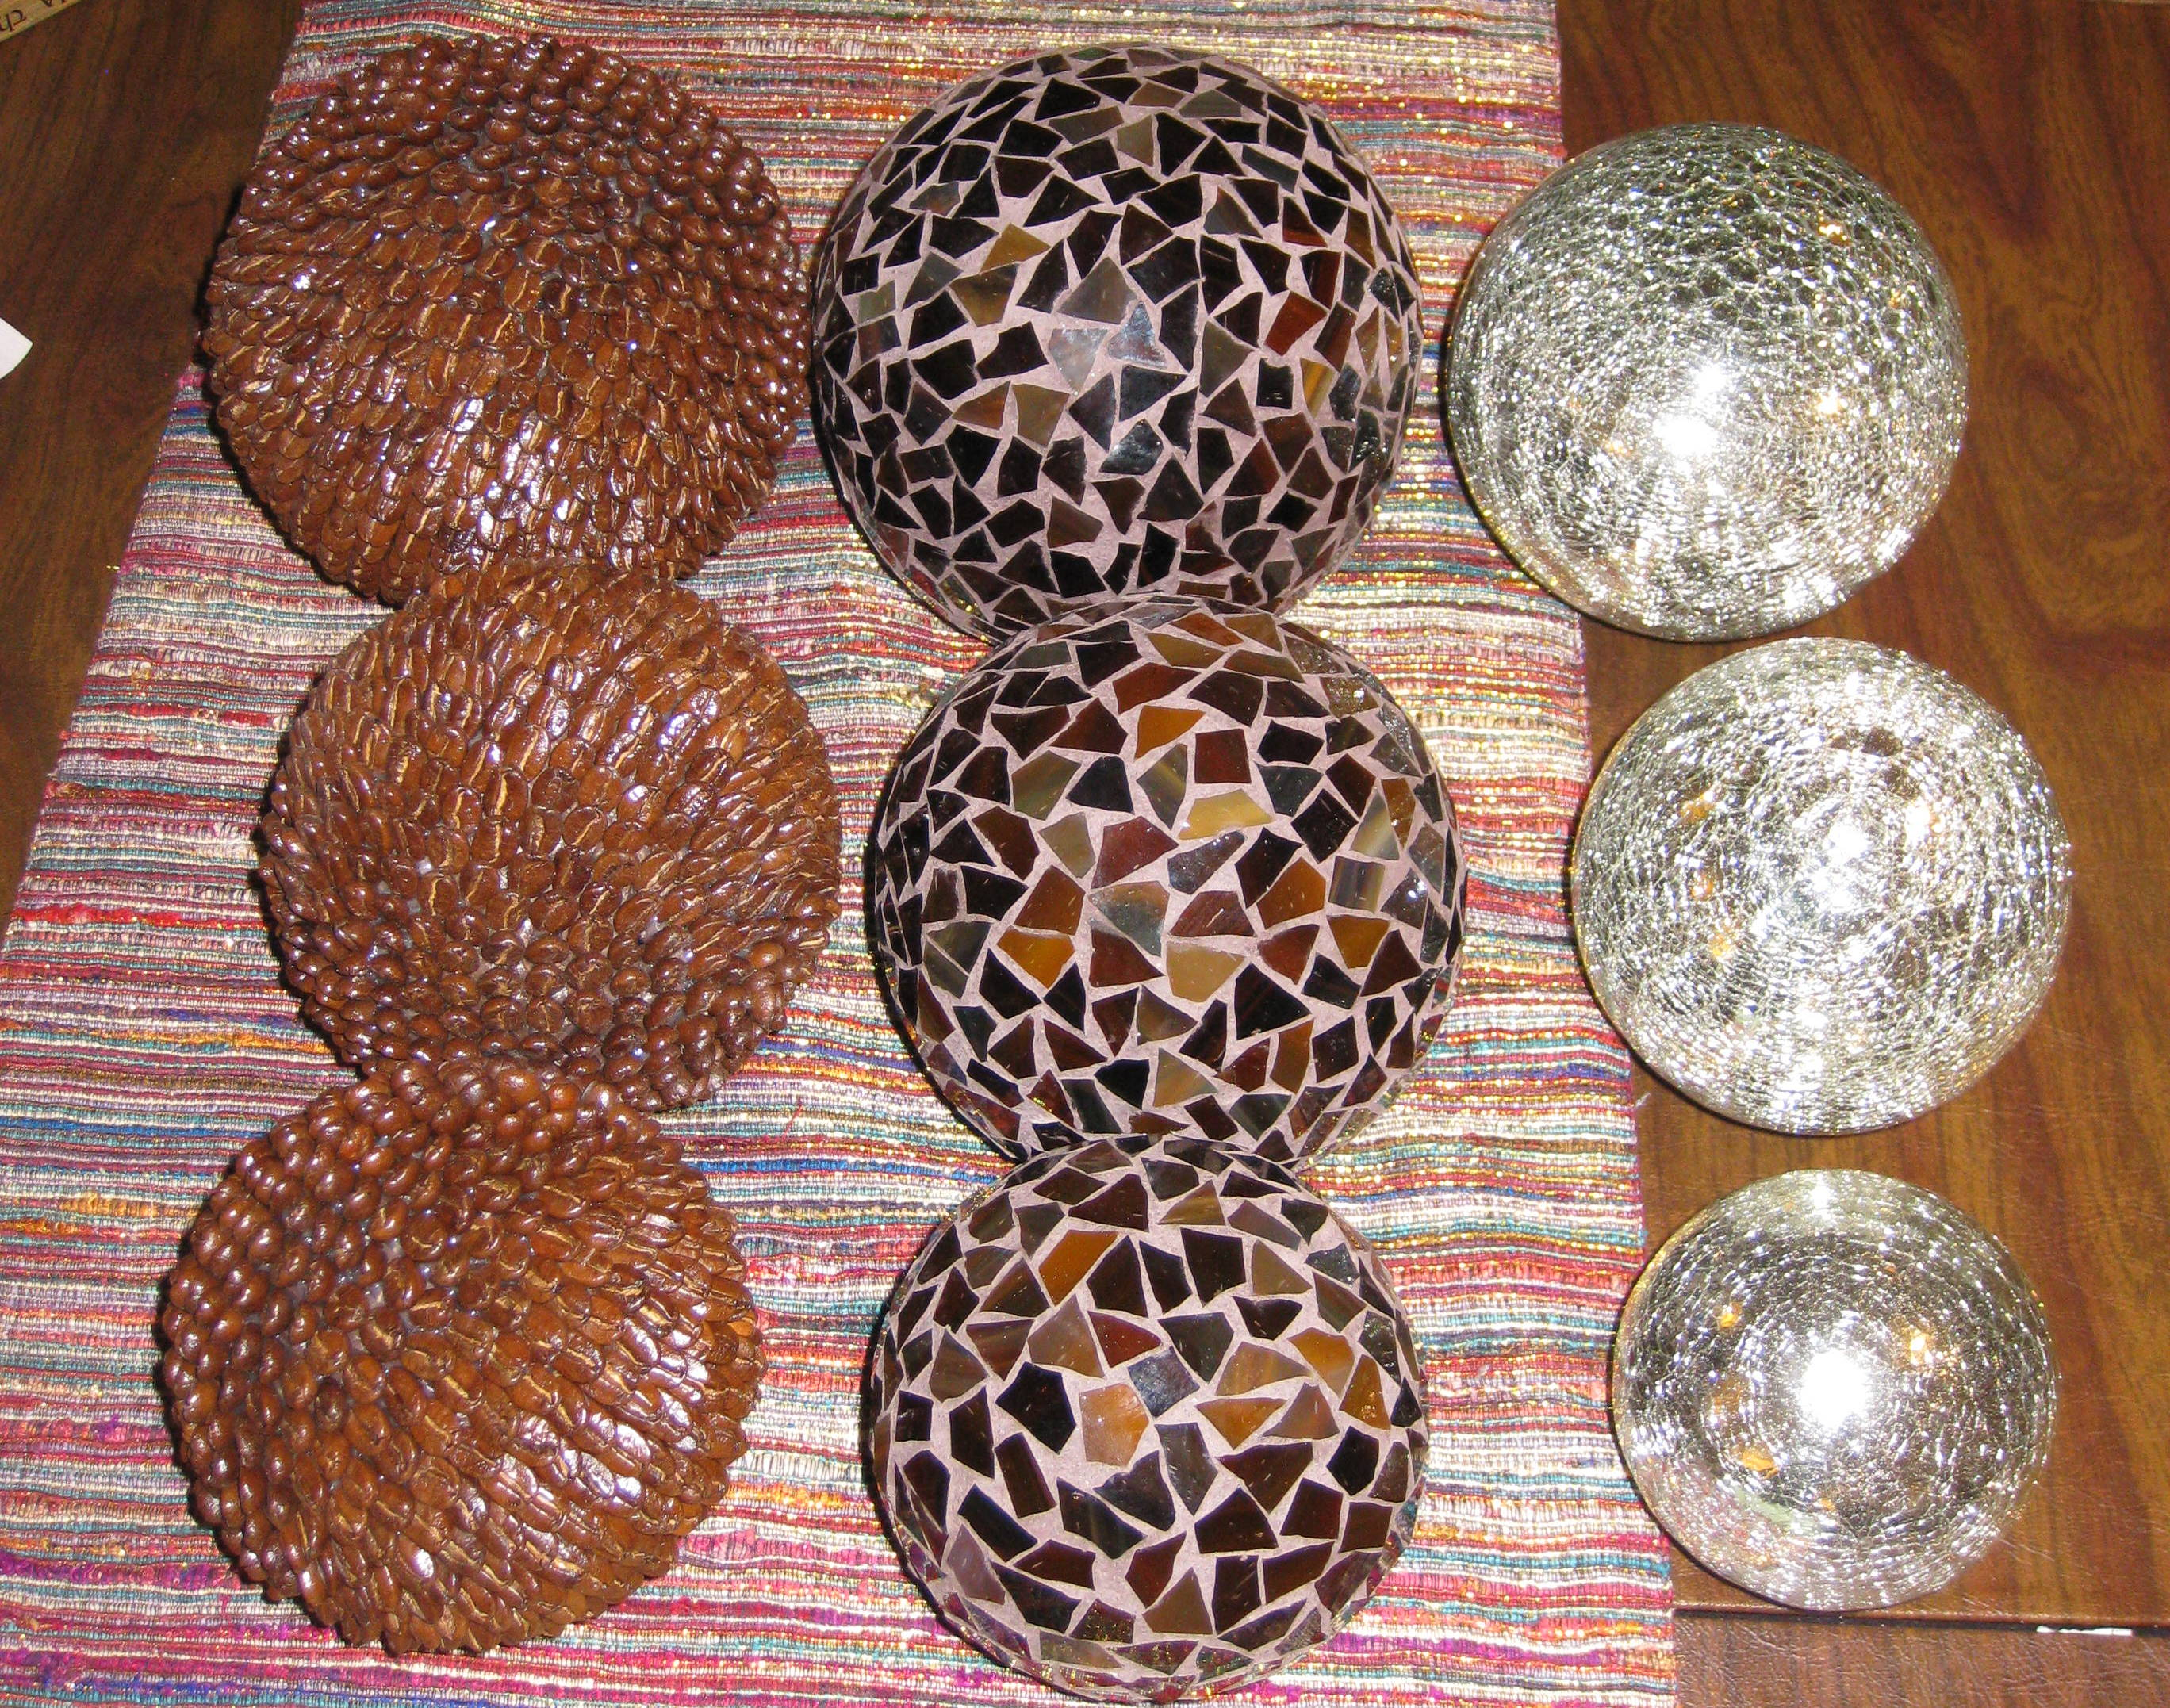 "In keeping with the ""sets of 3"" theme, we also found these decorative balls there... The middle ones have brown shards of glass, the right ones are some wacky crazed silver glass, and the left ones are covered in coffee beans! Don't worry; we don't plan to display them awkwardly in a big clump like this photo depicts."